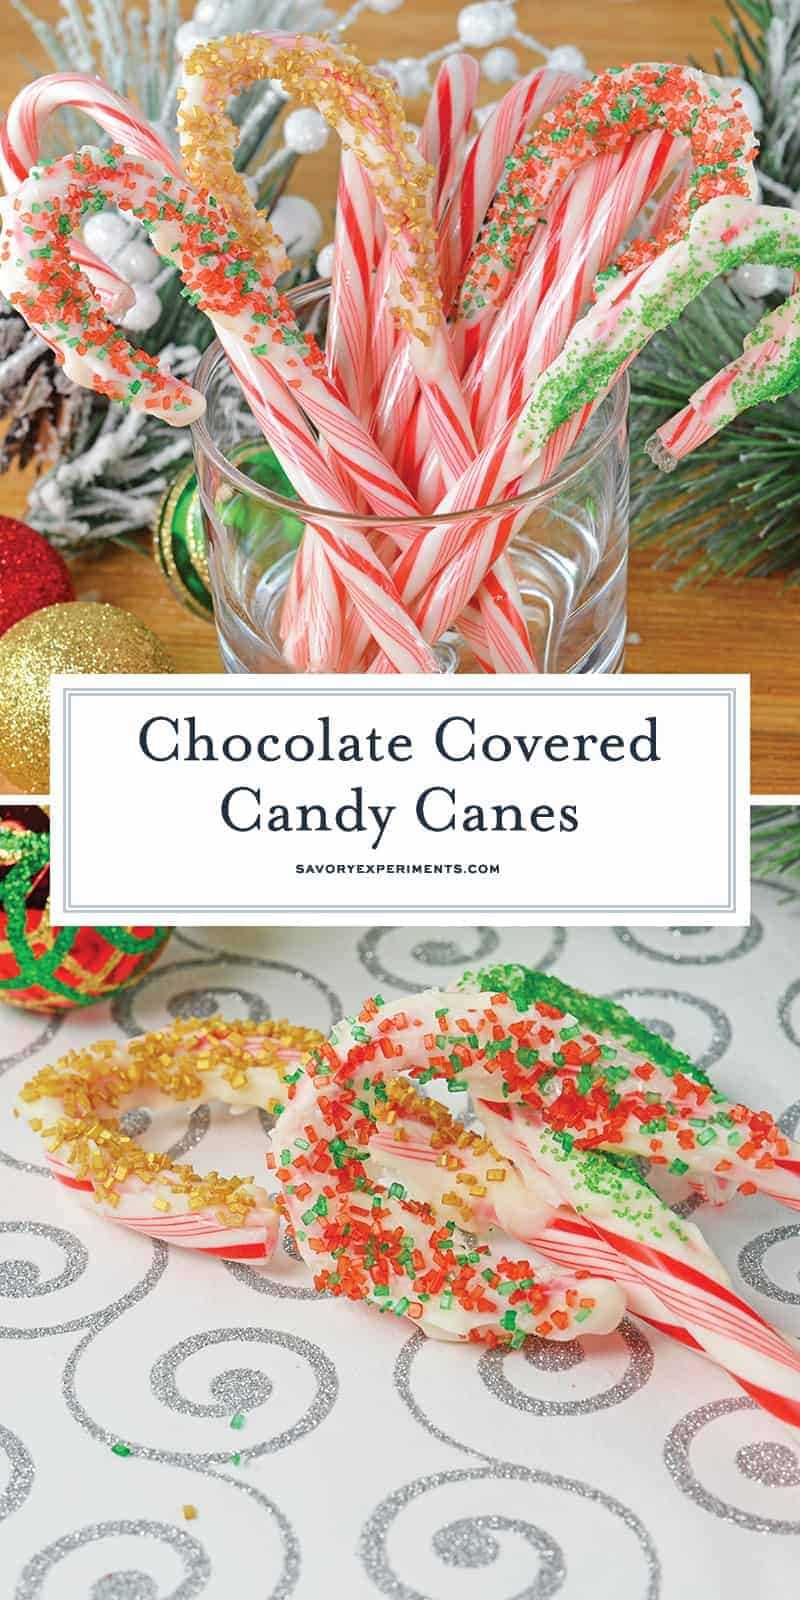 Chocolate Covered Candy Canes are the perfect fun and cheerful holiday treats! Ready in 15 minutes with no cooking! Add some festive sprinkles to jazz them up! #recipesthatusecandycanes #easychristmascookies www.savoryexperiments.com